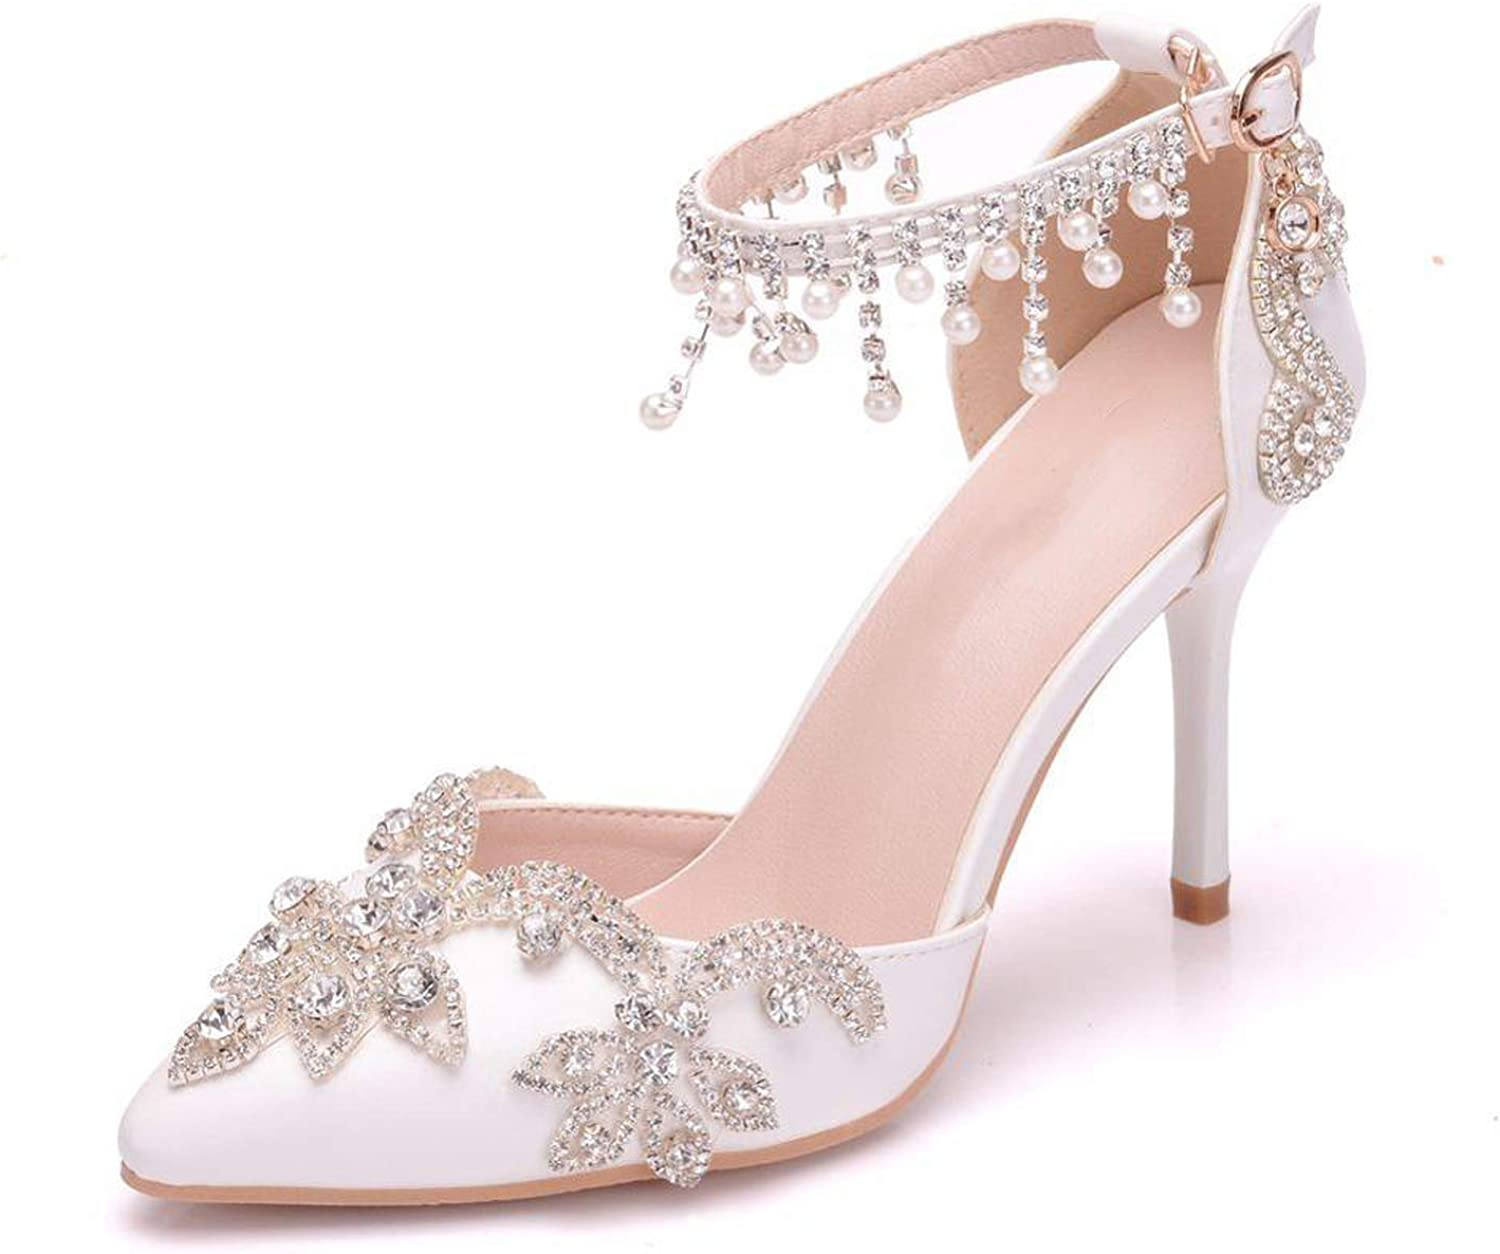 Wedding Thin Heels White Diamond Glittering Evening Dress Sandals Bride shoes Pumps Party